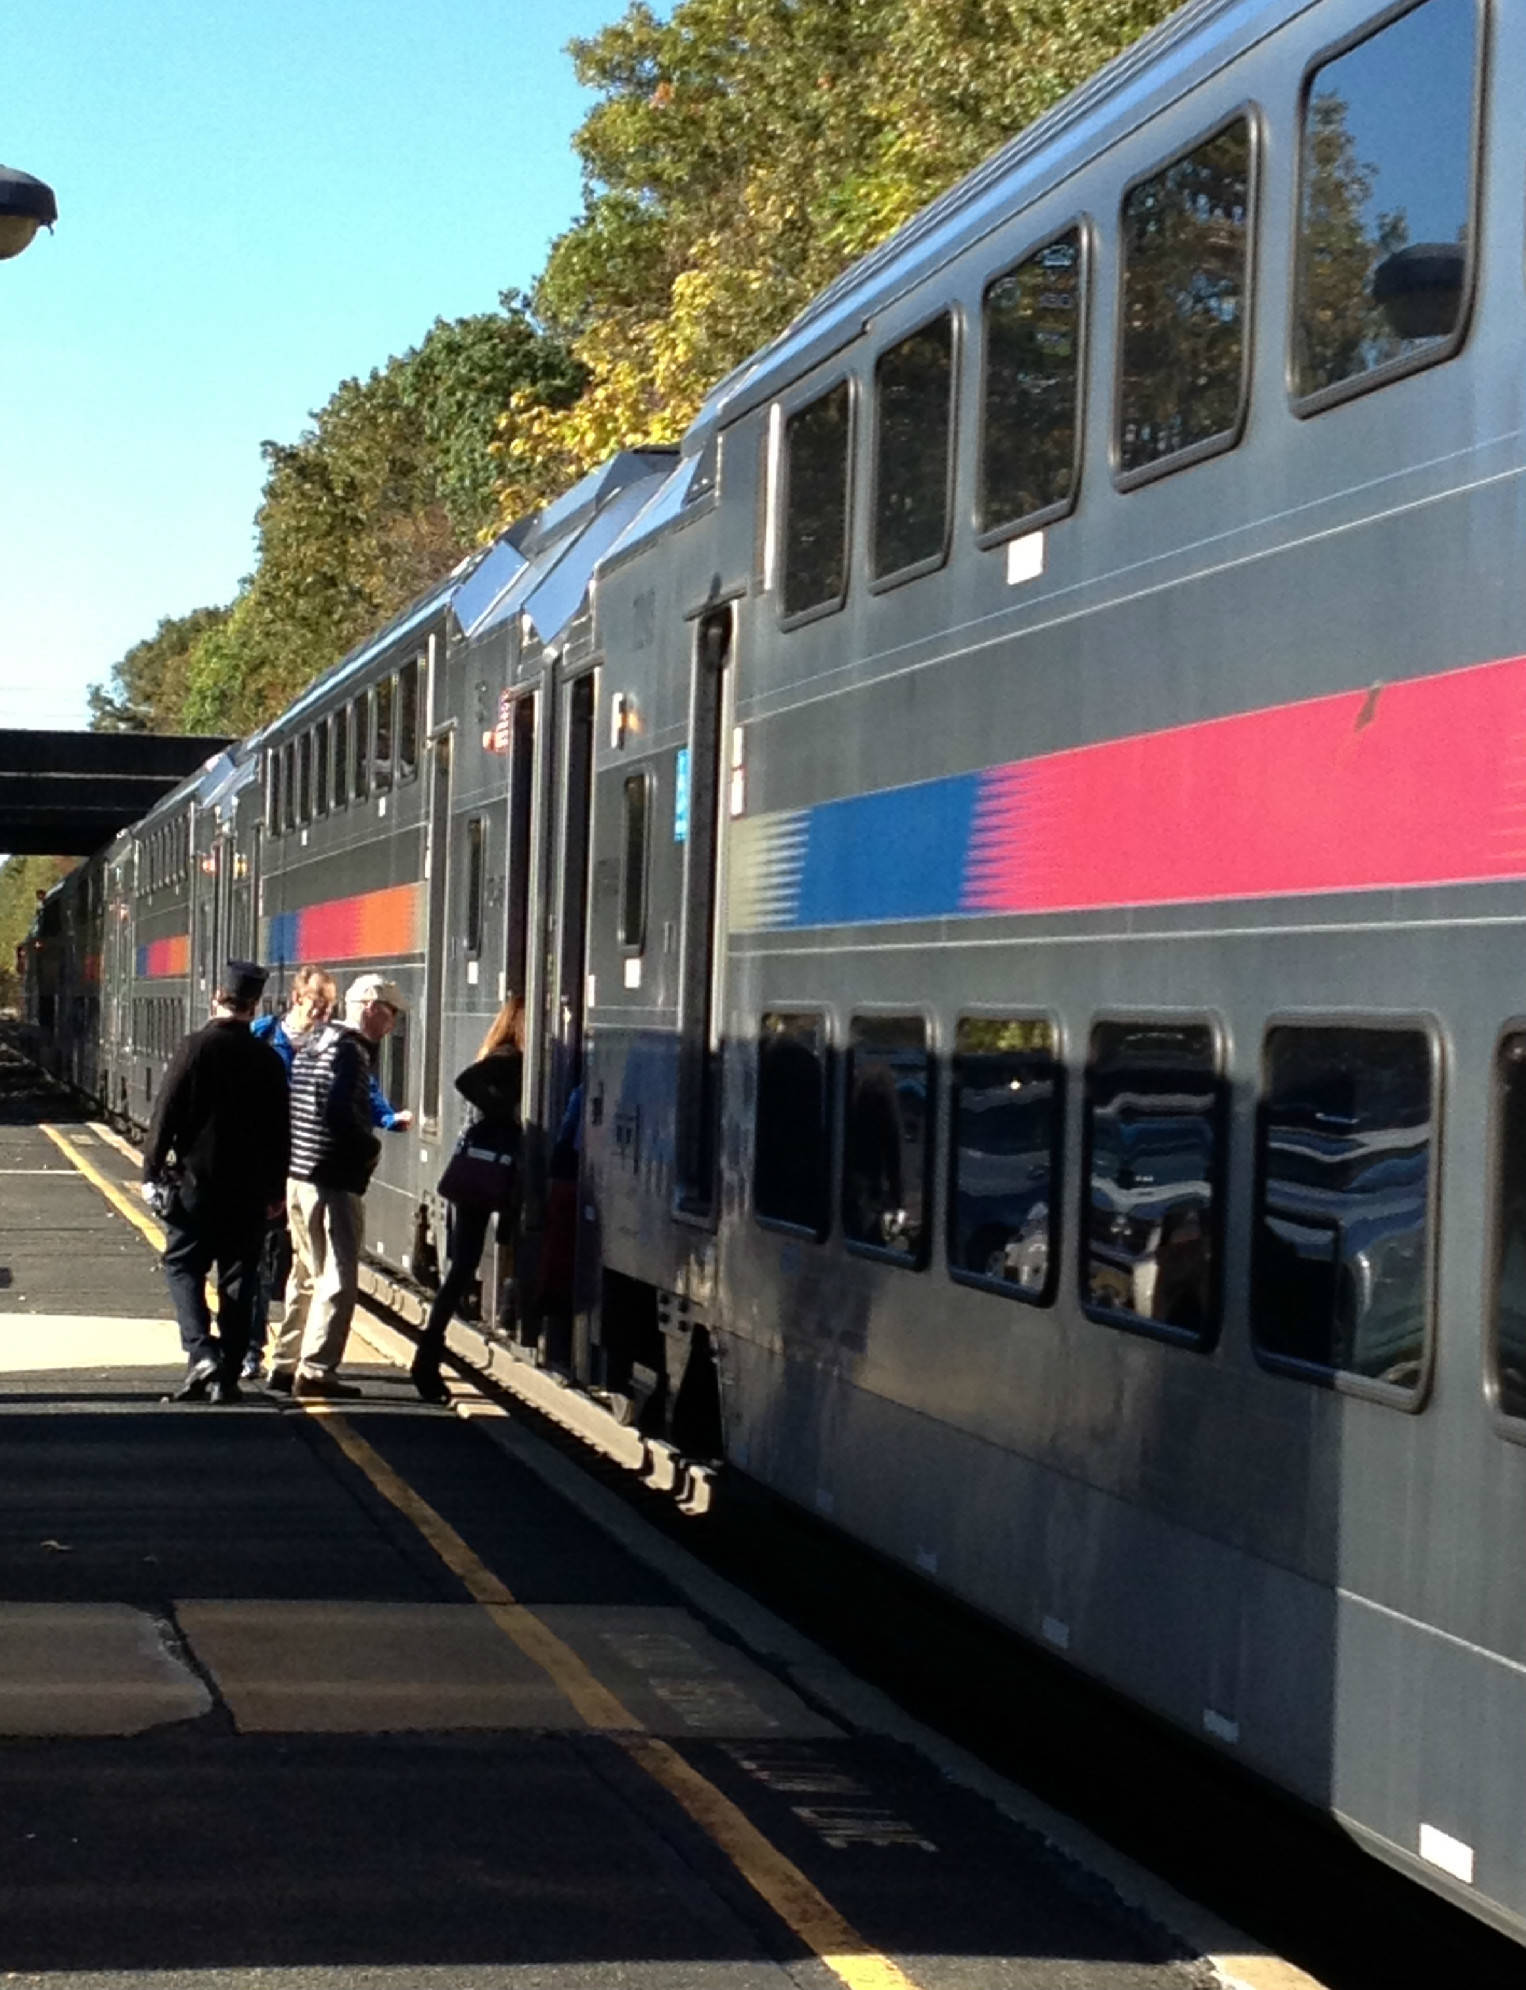 812693d6aace7bc9a09a_12635a11a22886fec0d1_1016am_Direct_Train_from_Fanwood_to_NYC_10-27-14.jpg